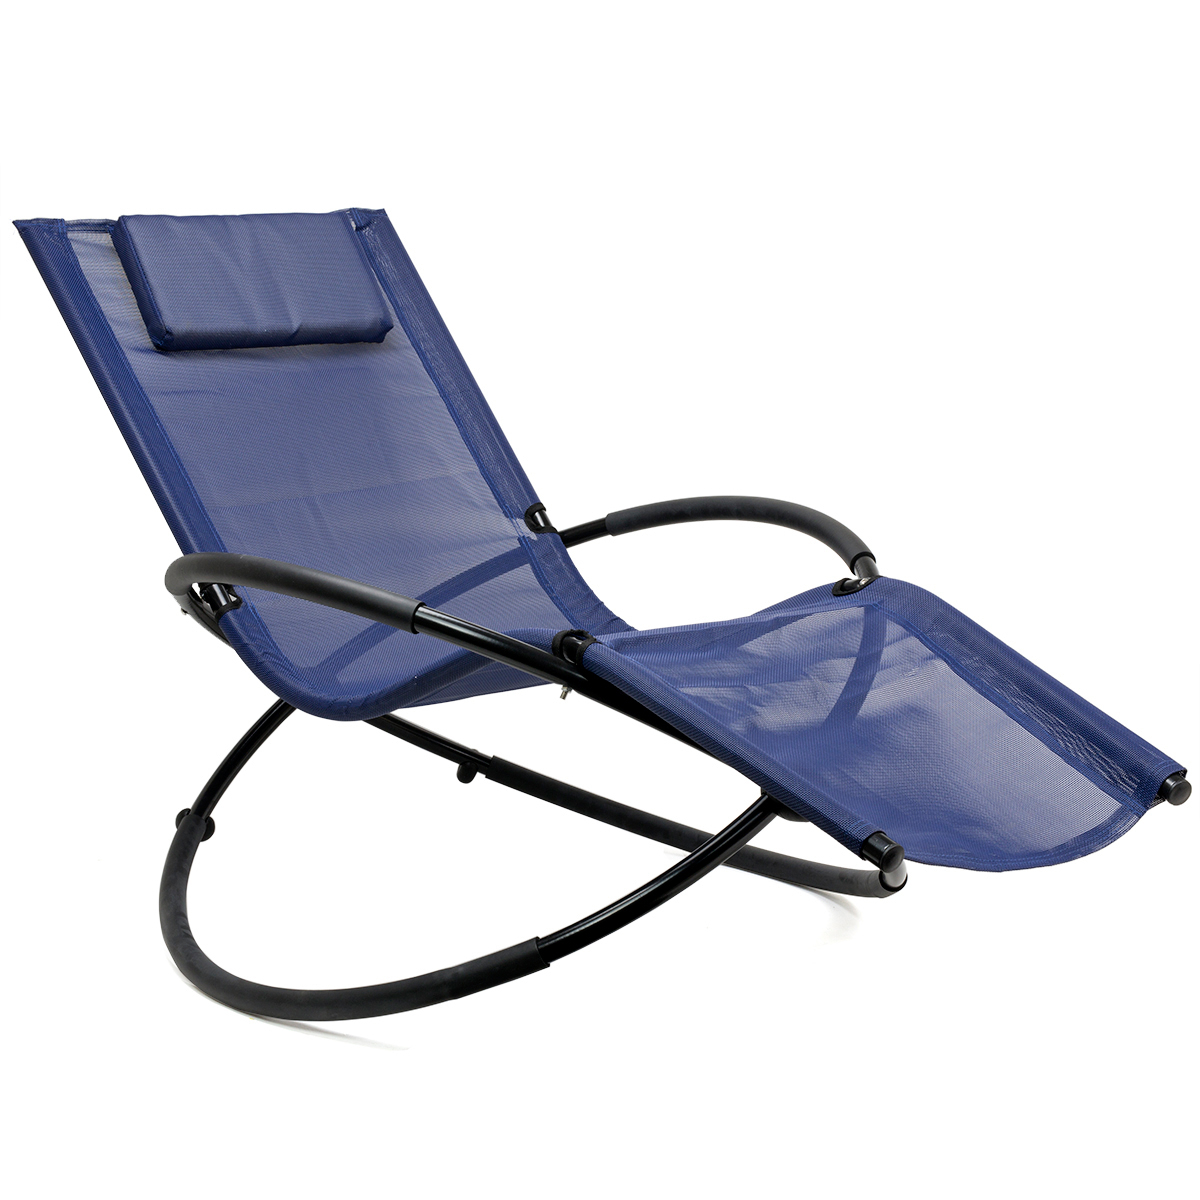 Orbital Patio Lounger Rocking Chairs Intended For Preferred Details About Folding Orbit Zero Gravity Chair Patio Garden Outdoor Lounger  Rocking  Navy (View 13 of 25)